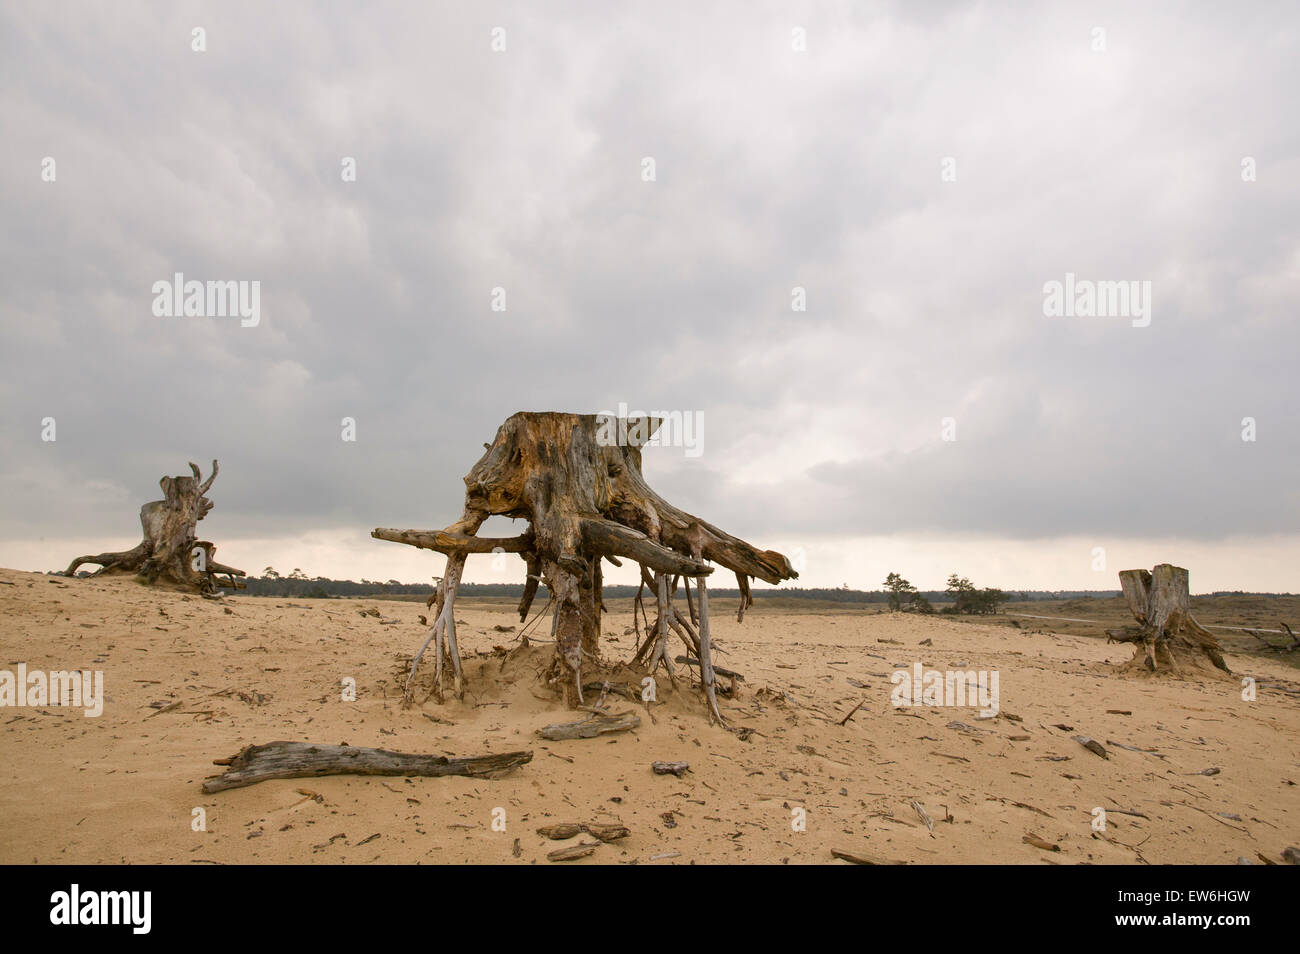 Eroded tree stumps stand on their roots in the Hoge de Veluwe National Park in the Netherlands. - Stock Image